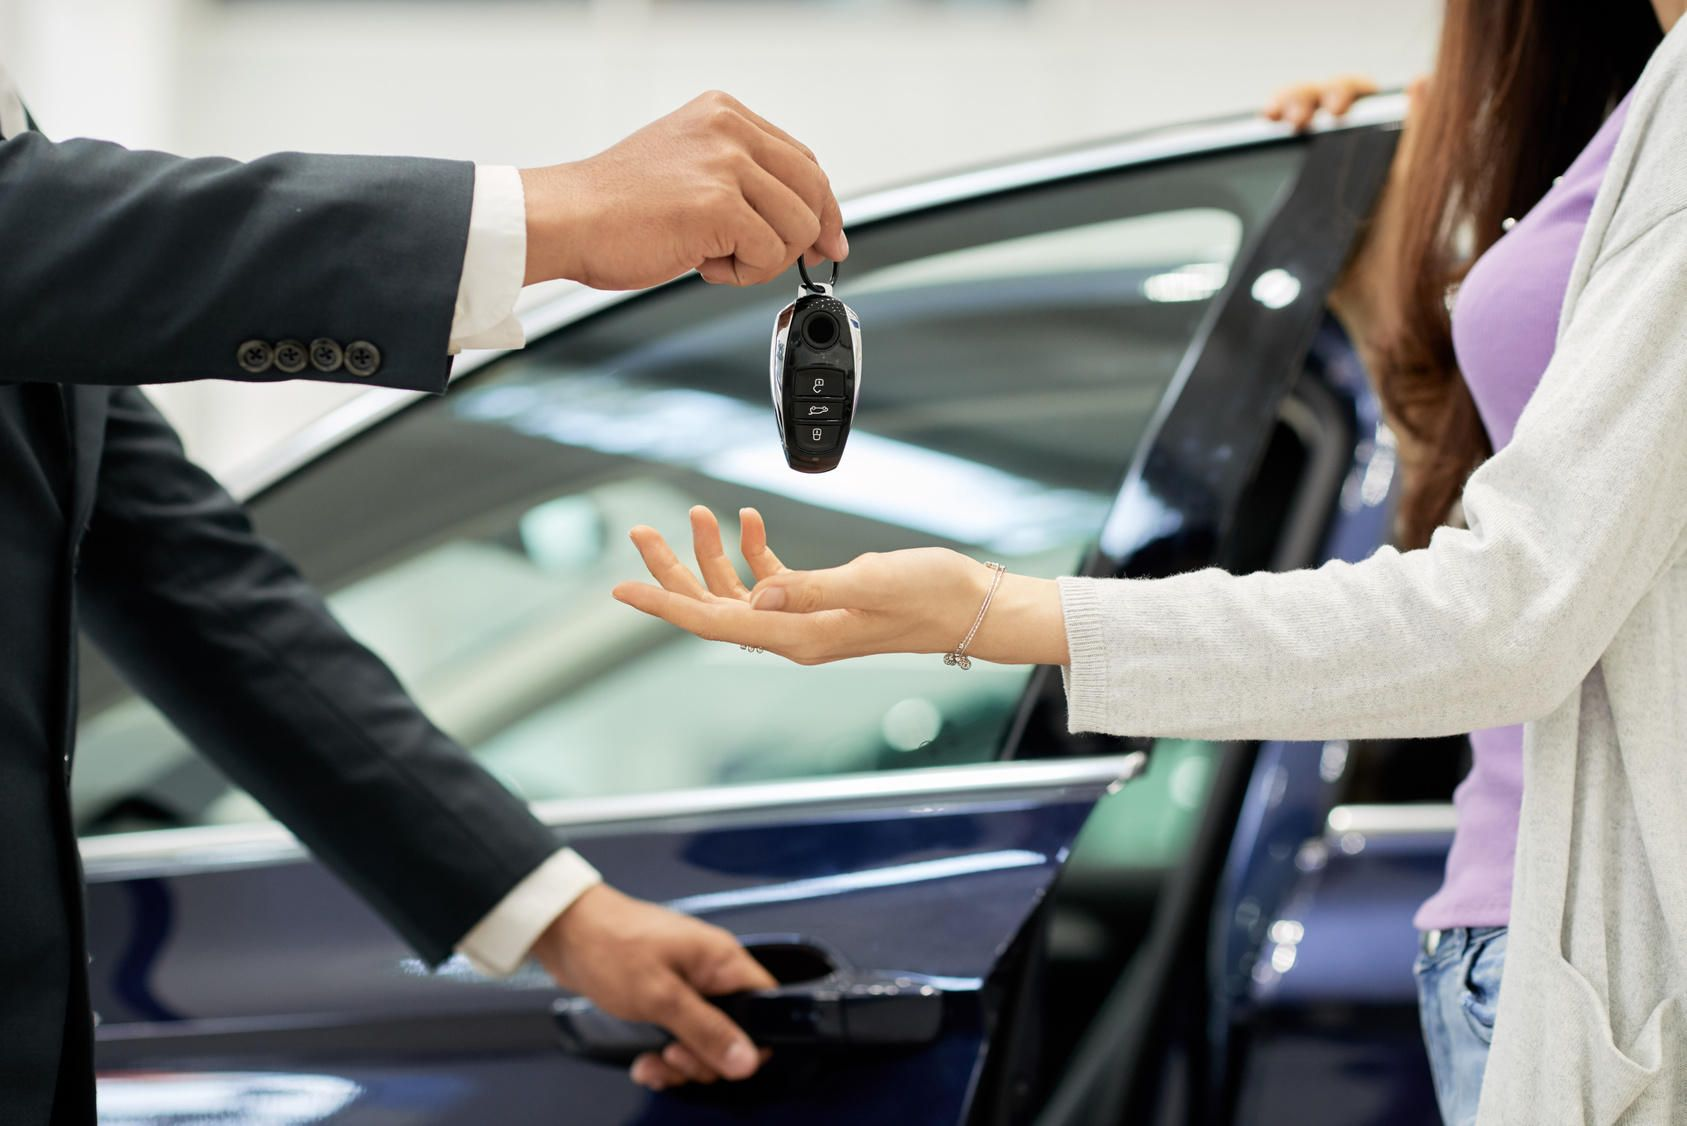 Luxury car rental market report 2019 says that the market